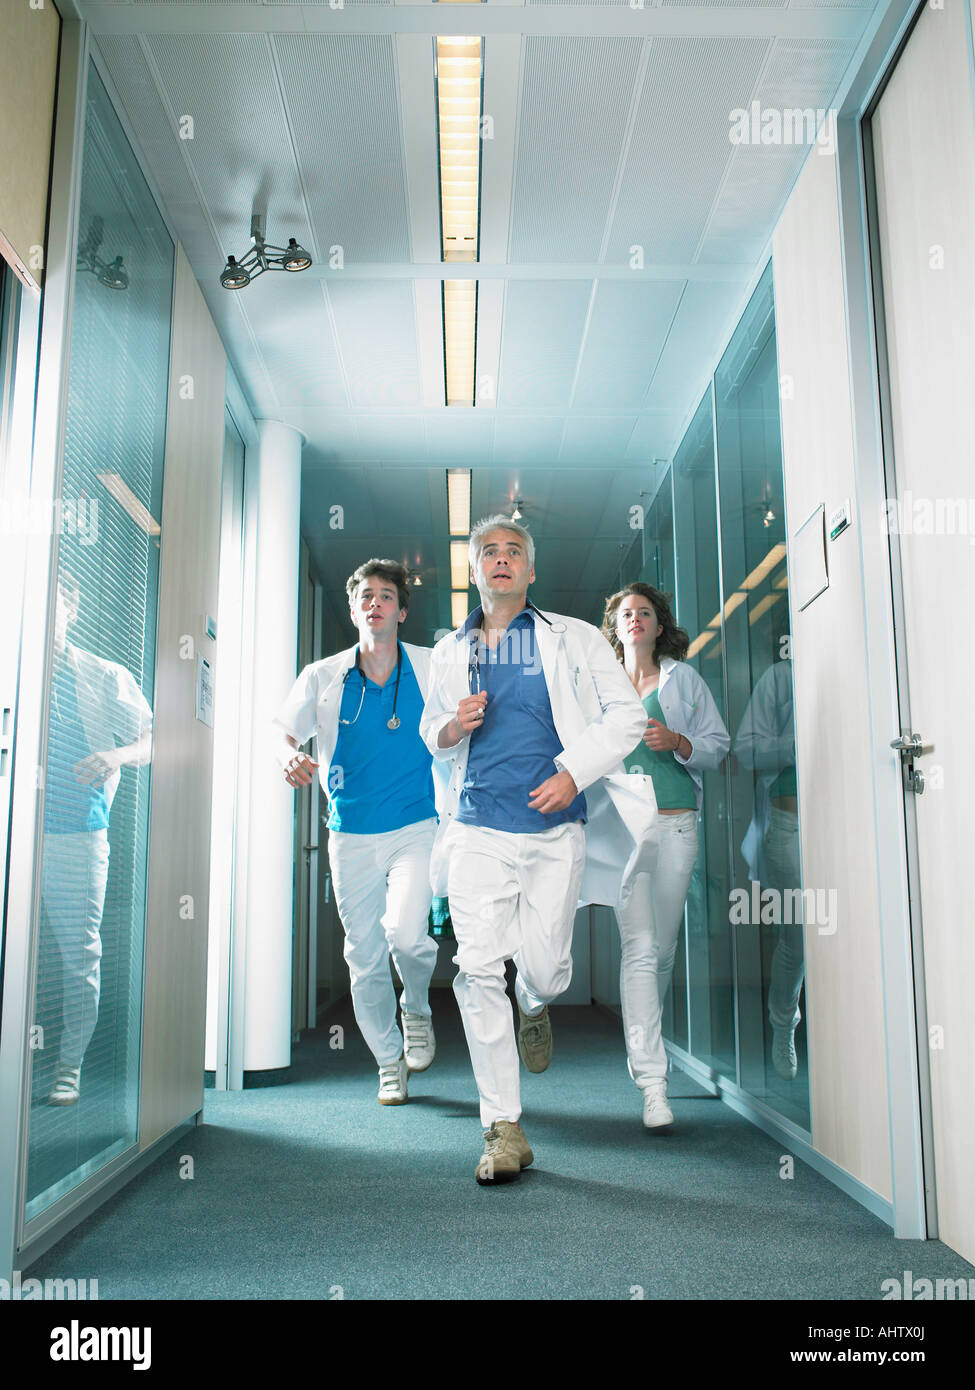 Three doctors running in a lobby of a hospital. - Stock Image